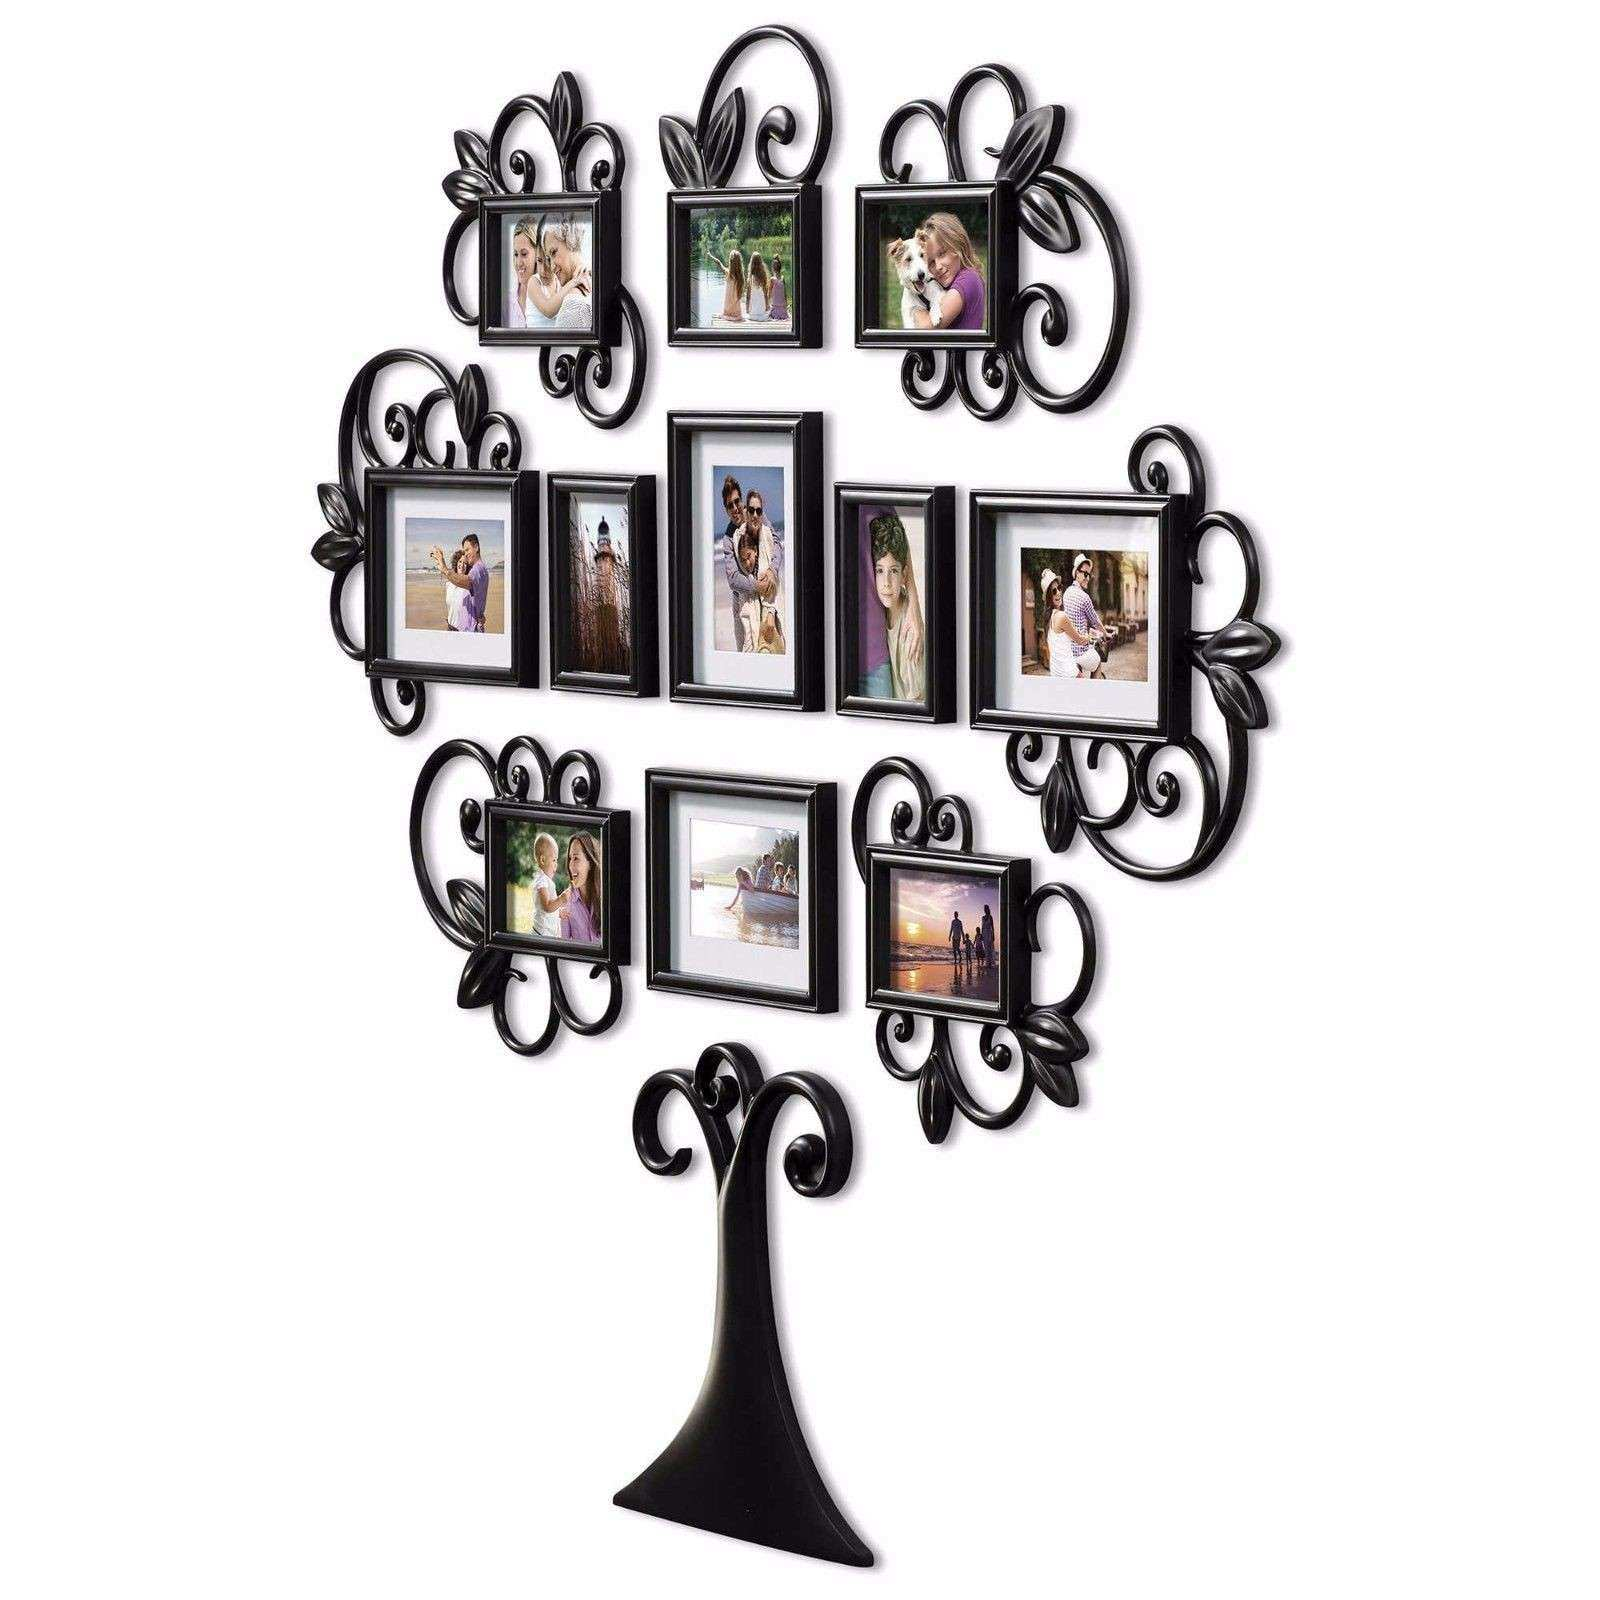 Chic College Wall Art Decals Hallway Family Tree Collage